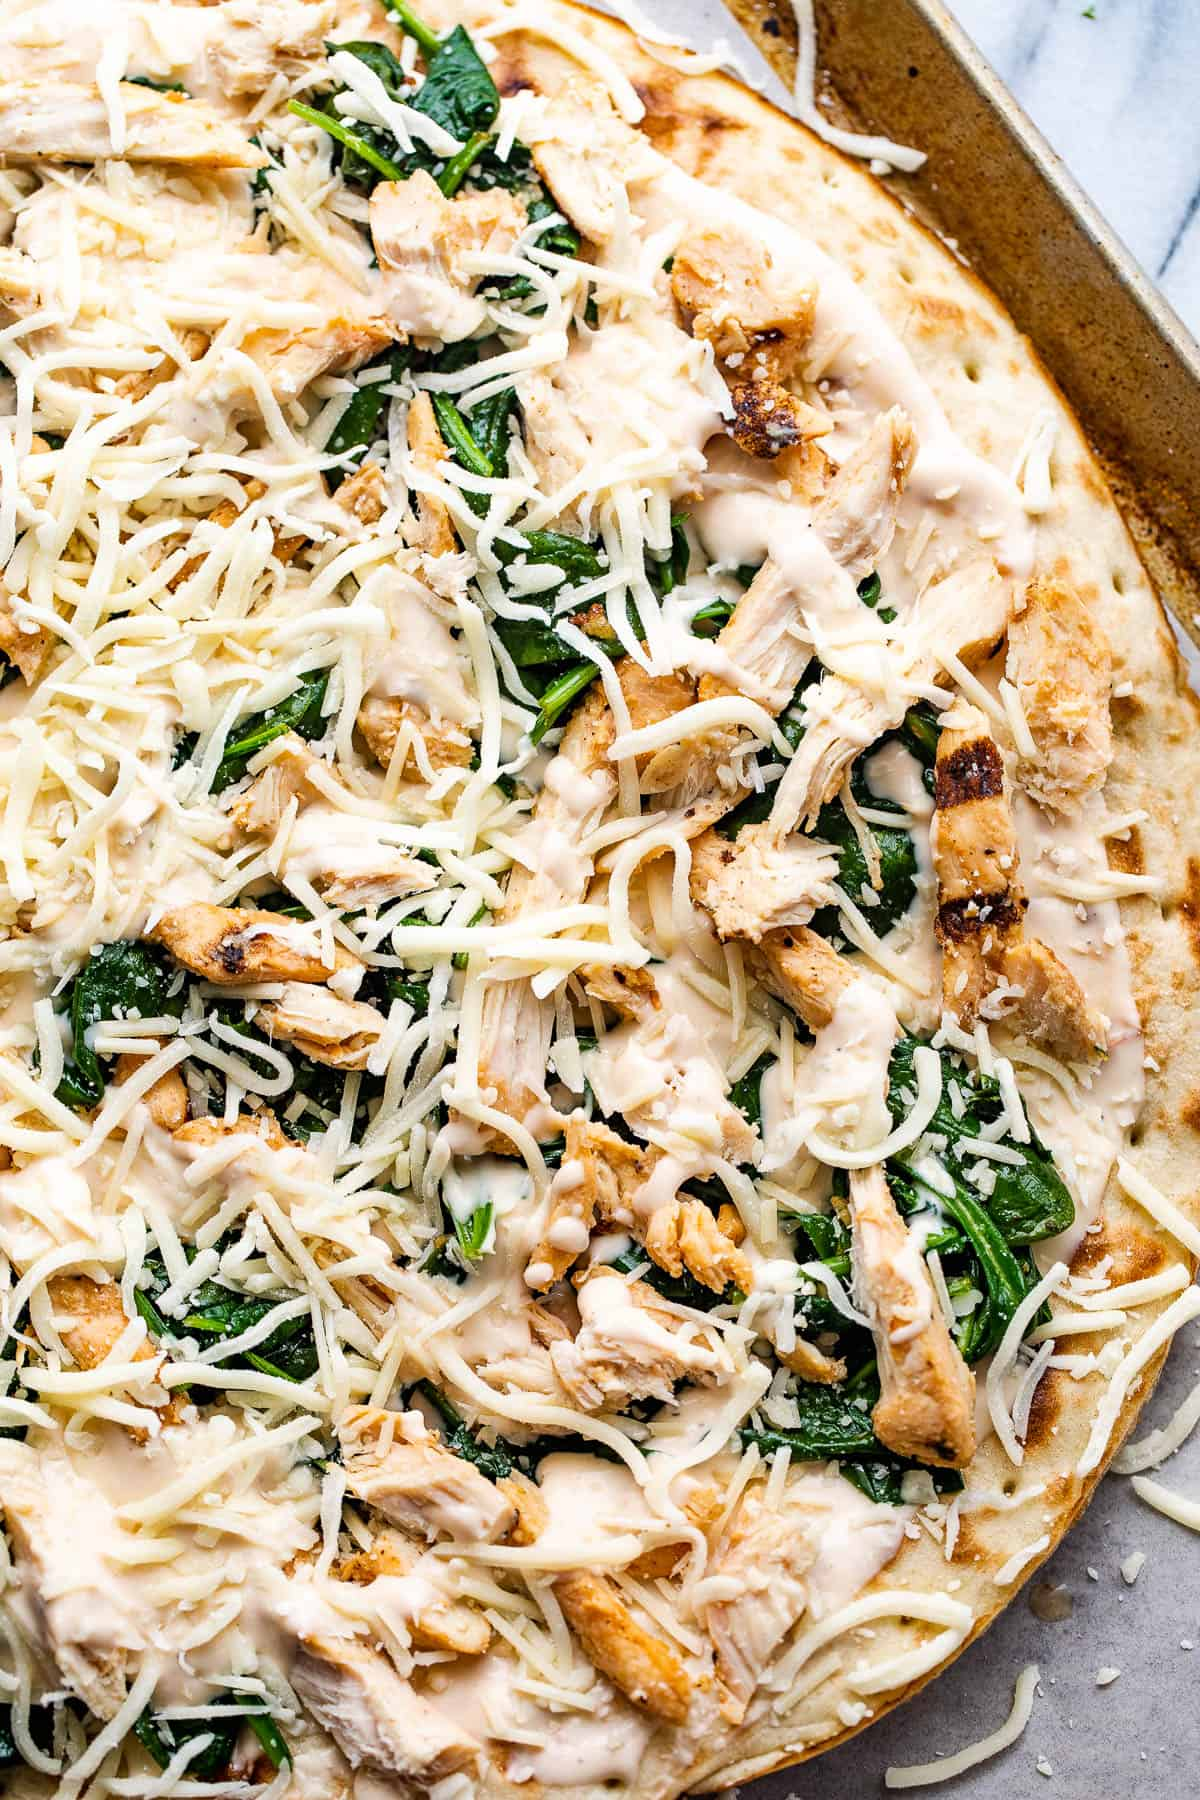 preparing pizza with alfredo sauce, shredded chicken, spinach, and cheese